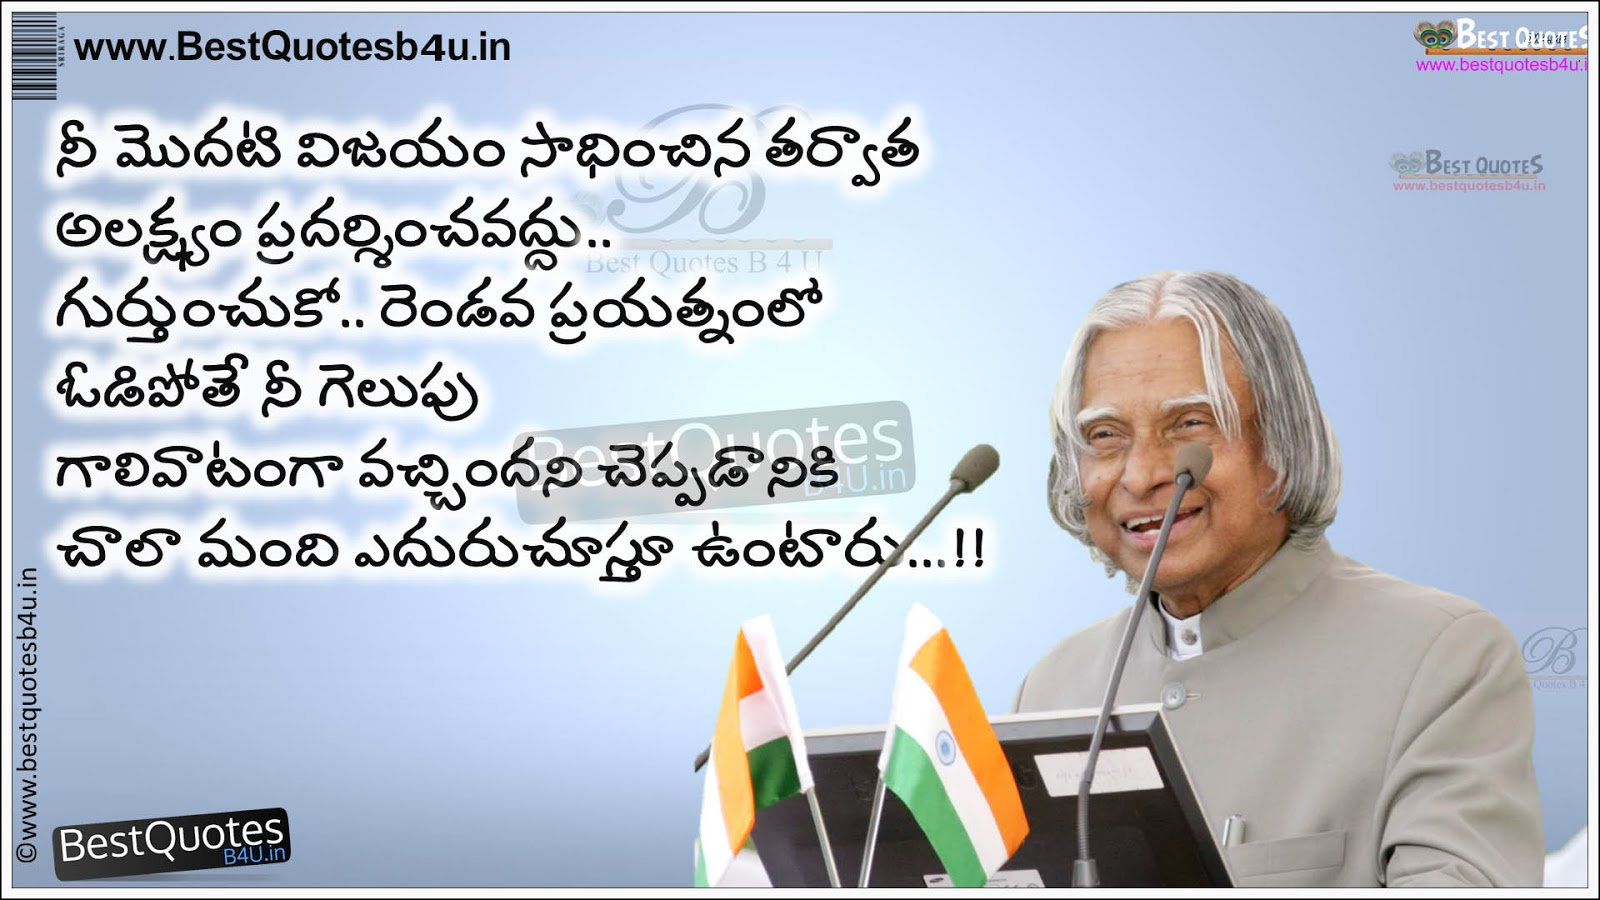 essay in hindi language on apj abdul kalam Apj abdul kalam was a true legend of our times through his life, career and writings he has inspired generations of indians, and even after his demise, india's 'people's president' and 'missile ma.